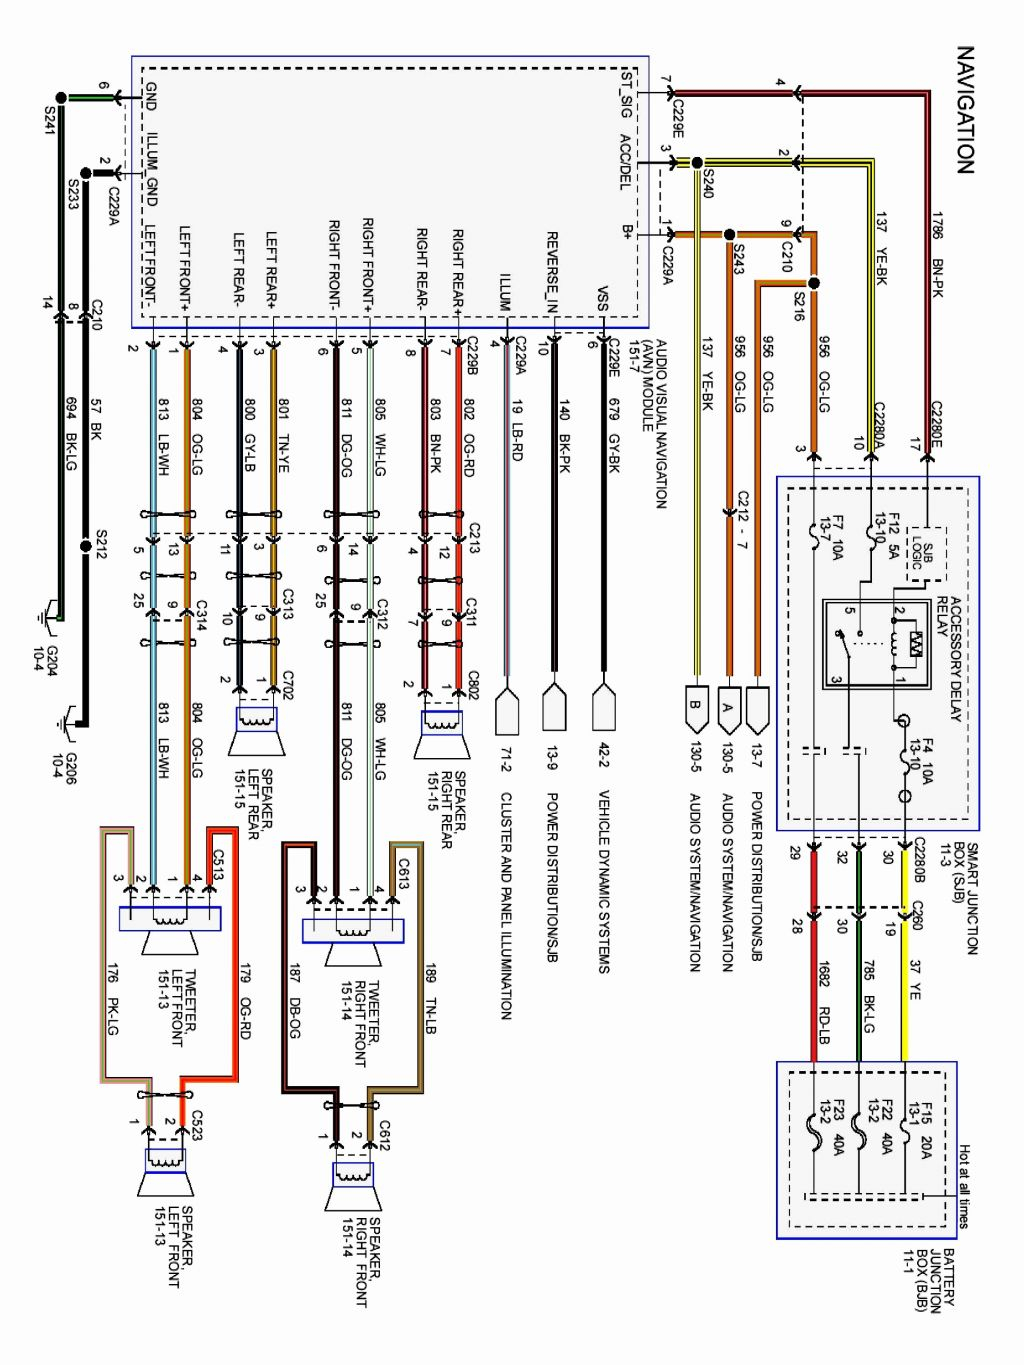 hight resolution of 2003 ford escape radio wiring diagram collection 2003 ford explorer radio wiring diagram awesome 2006